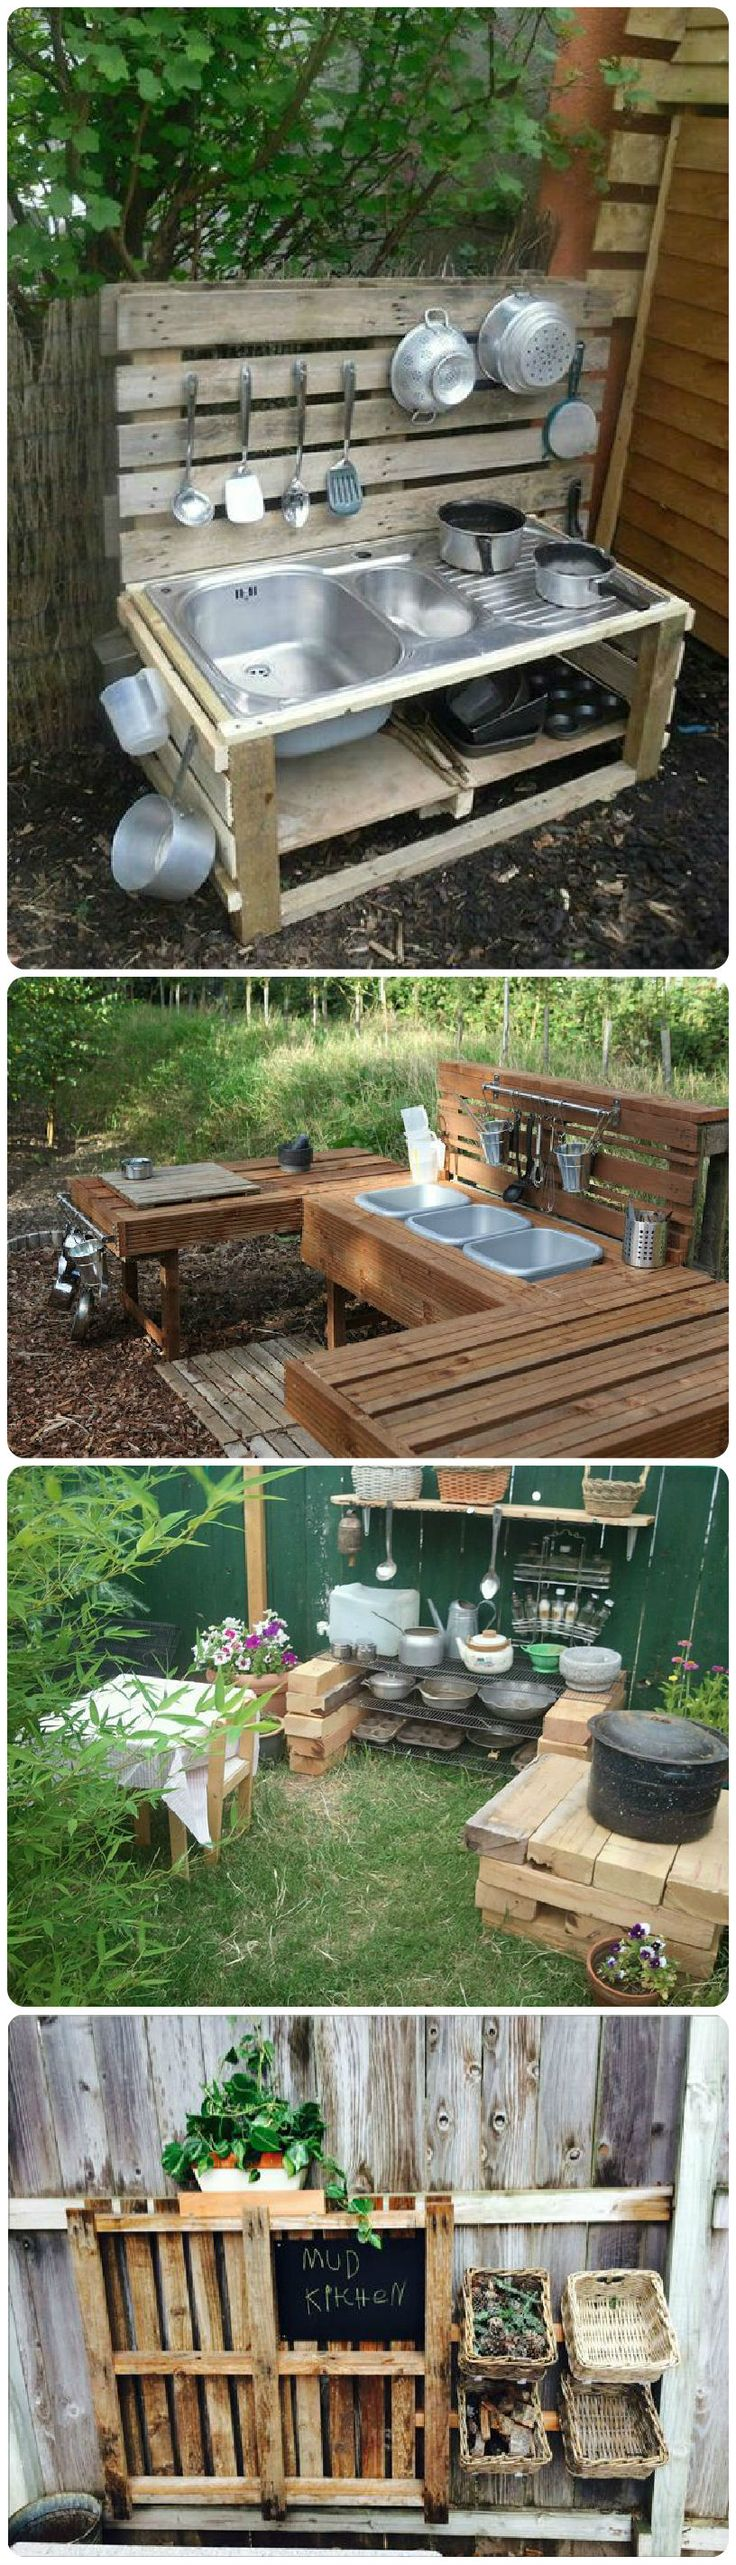 Mud kitchens (also known as outdoor kitchens or mud pie kitchens) are one of the best resources for little ones to play outside. While looking for inspirat.